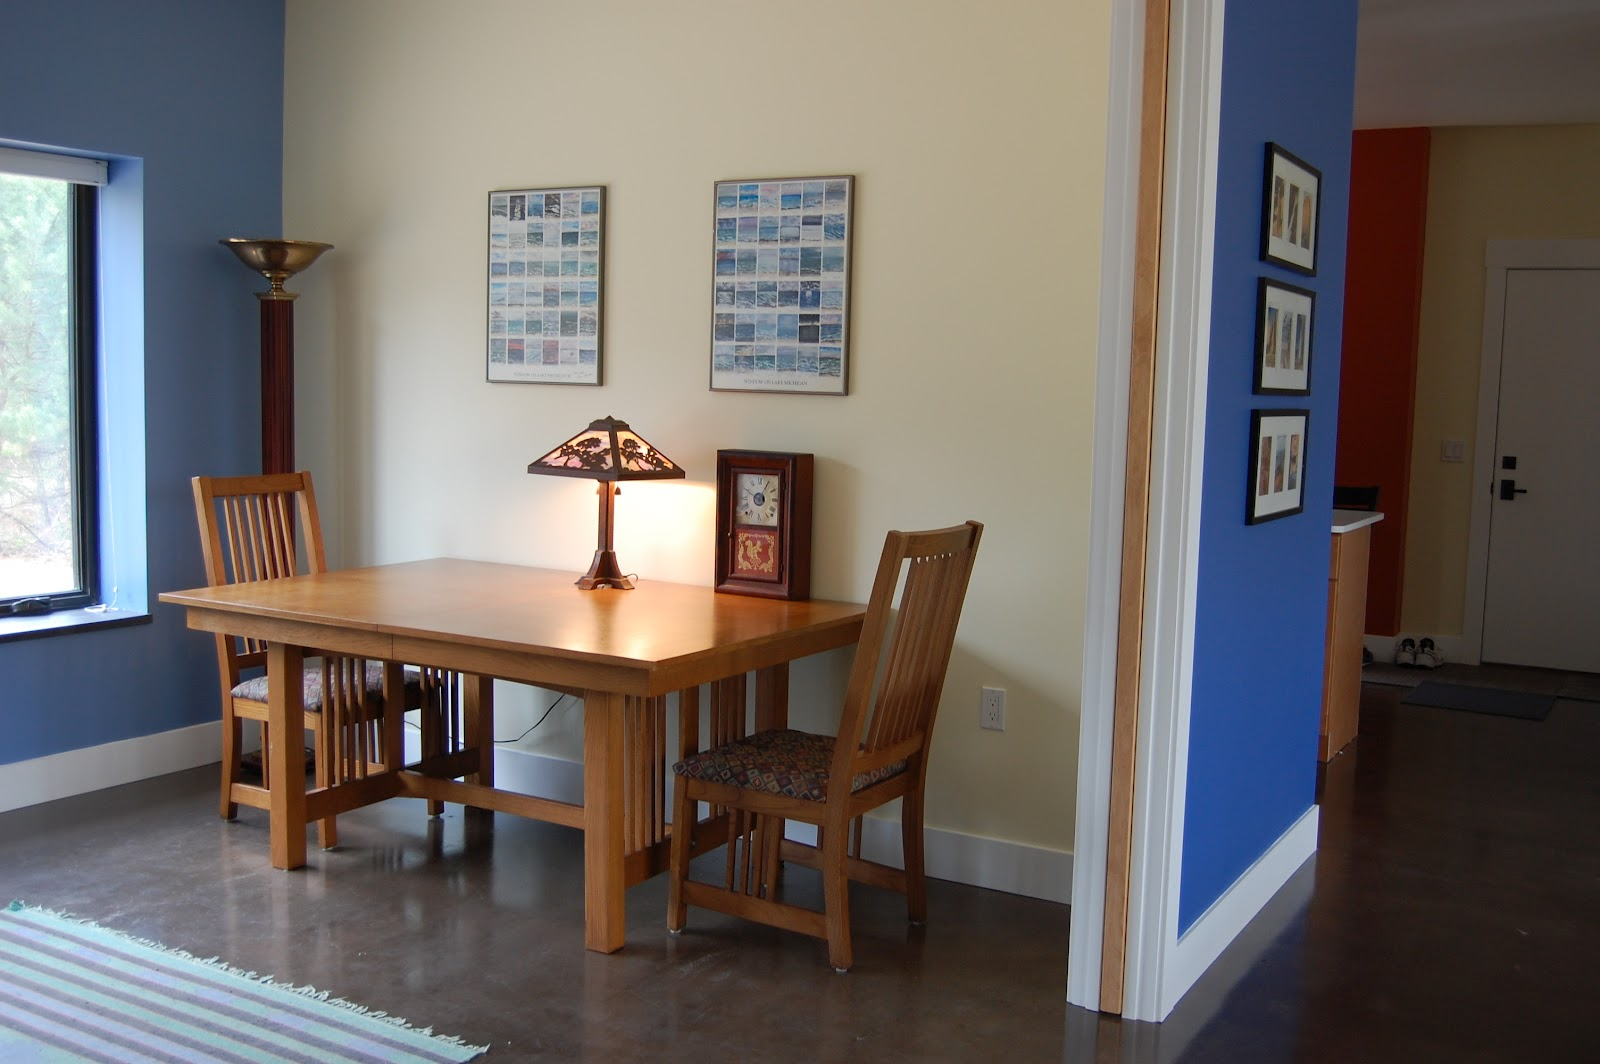 Dining table against wall 15 portraits gallery home - Dining table against the wall ...